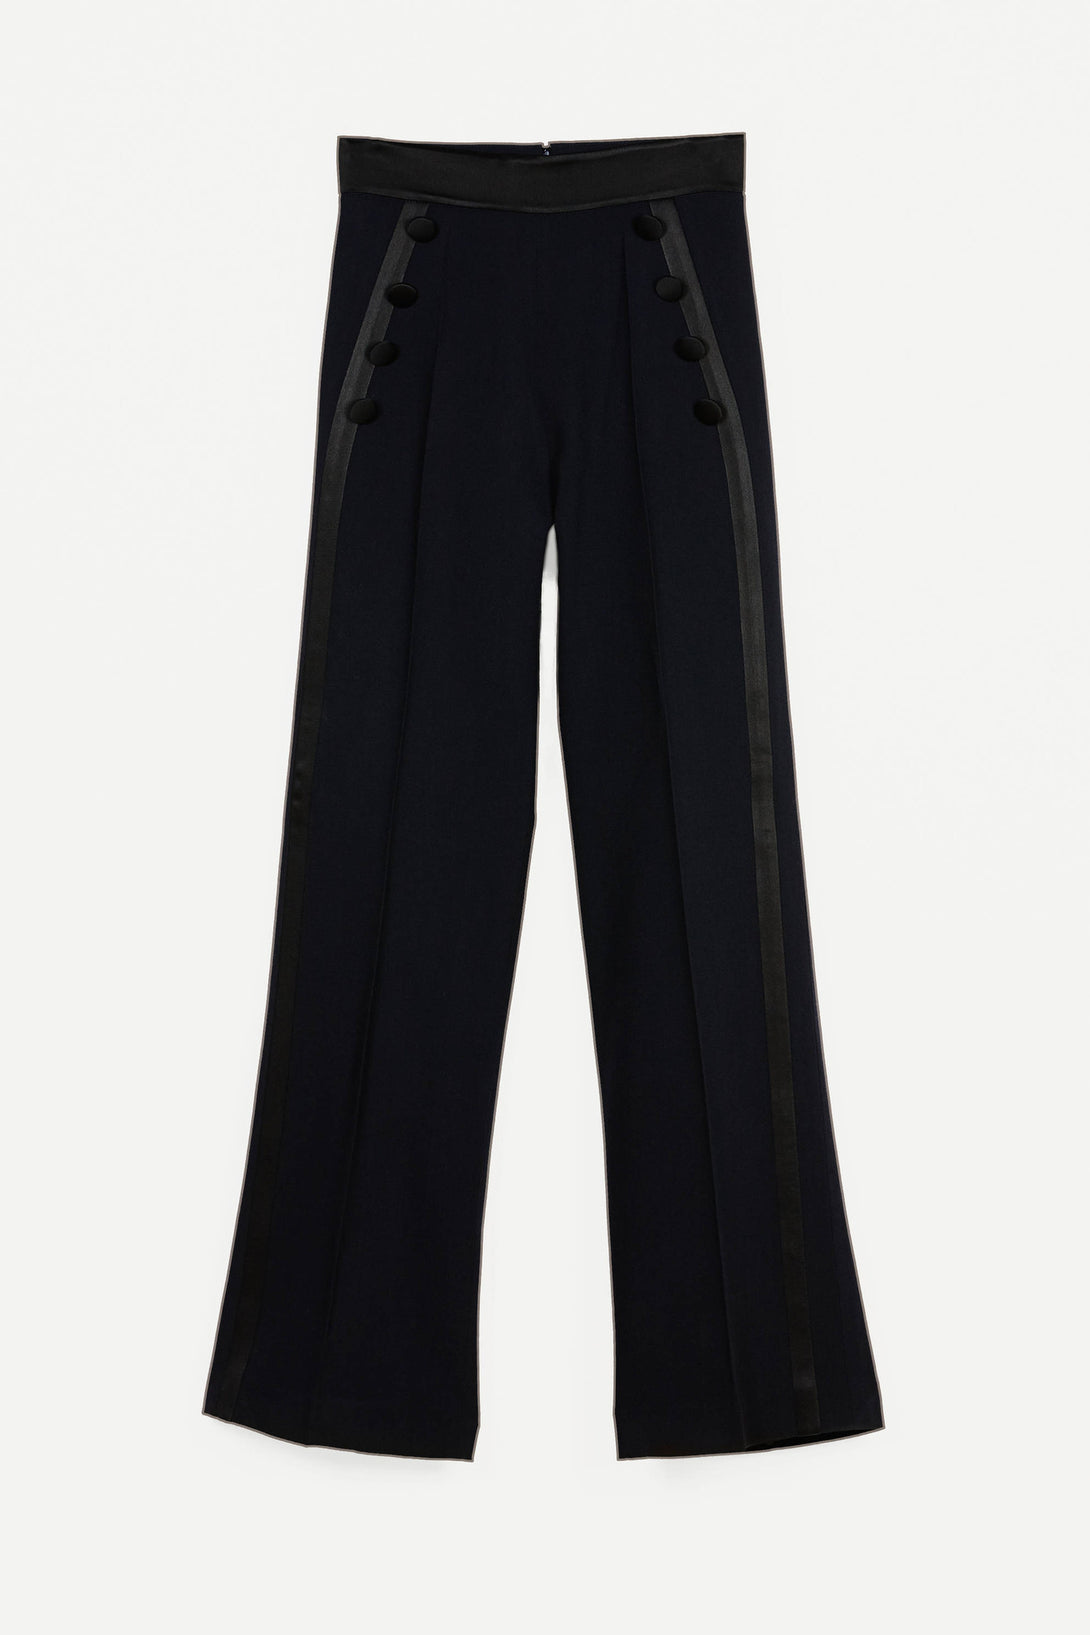 Sirah Sailor Pants - Marine/Noir